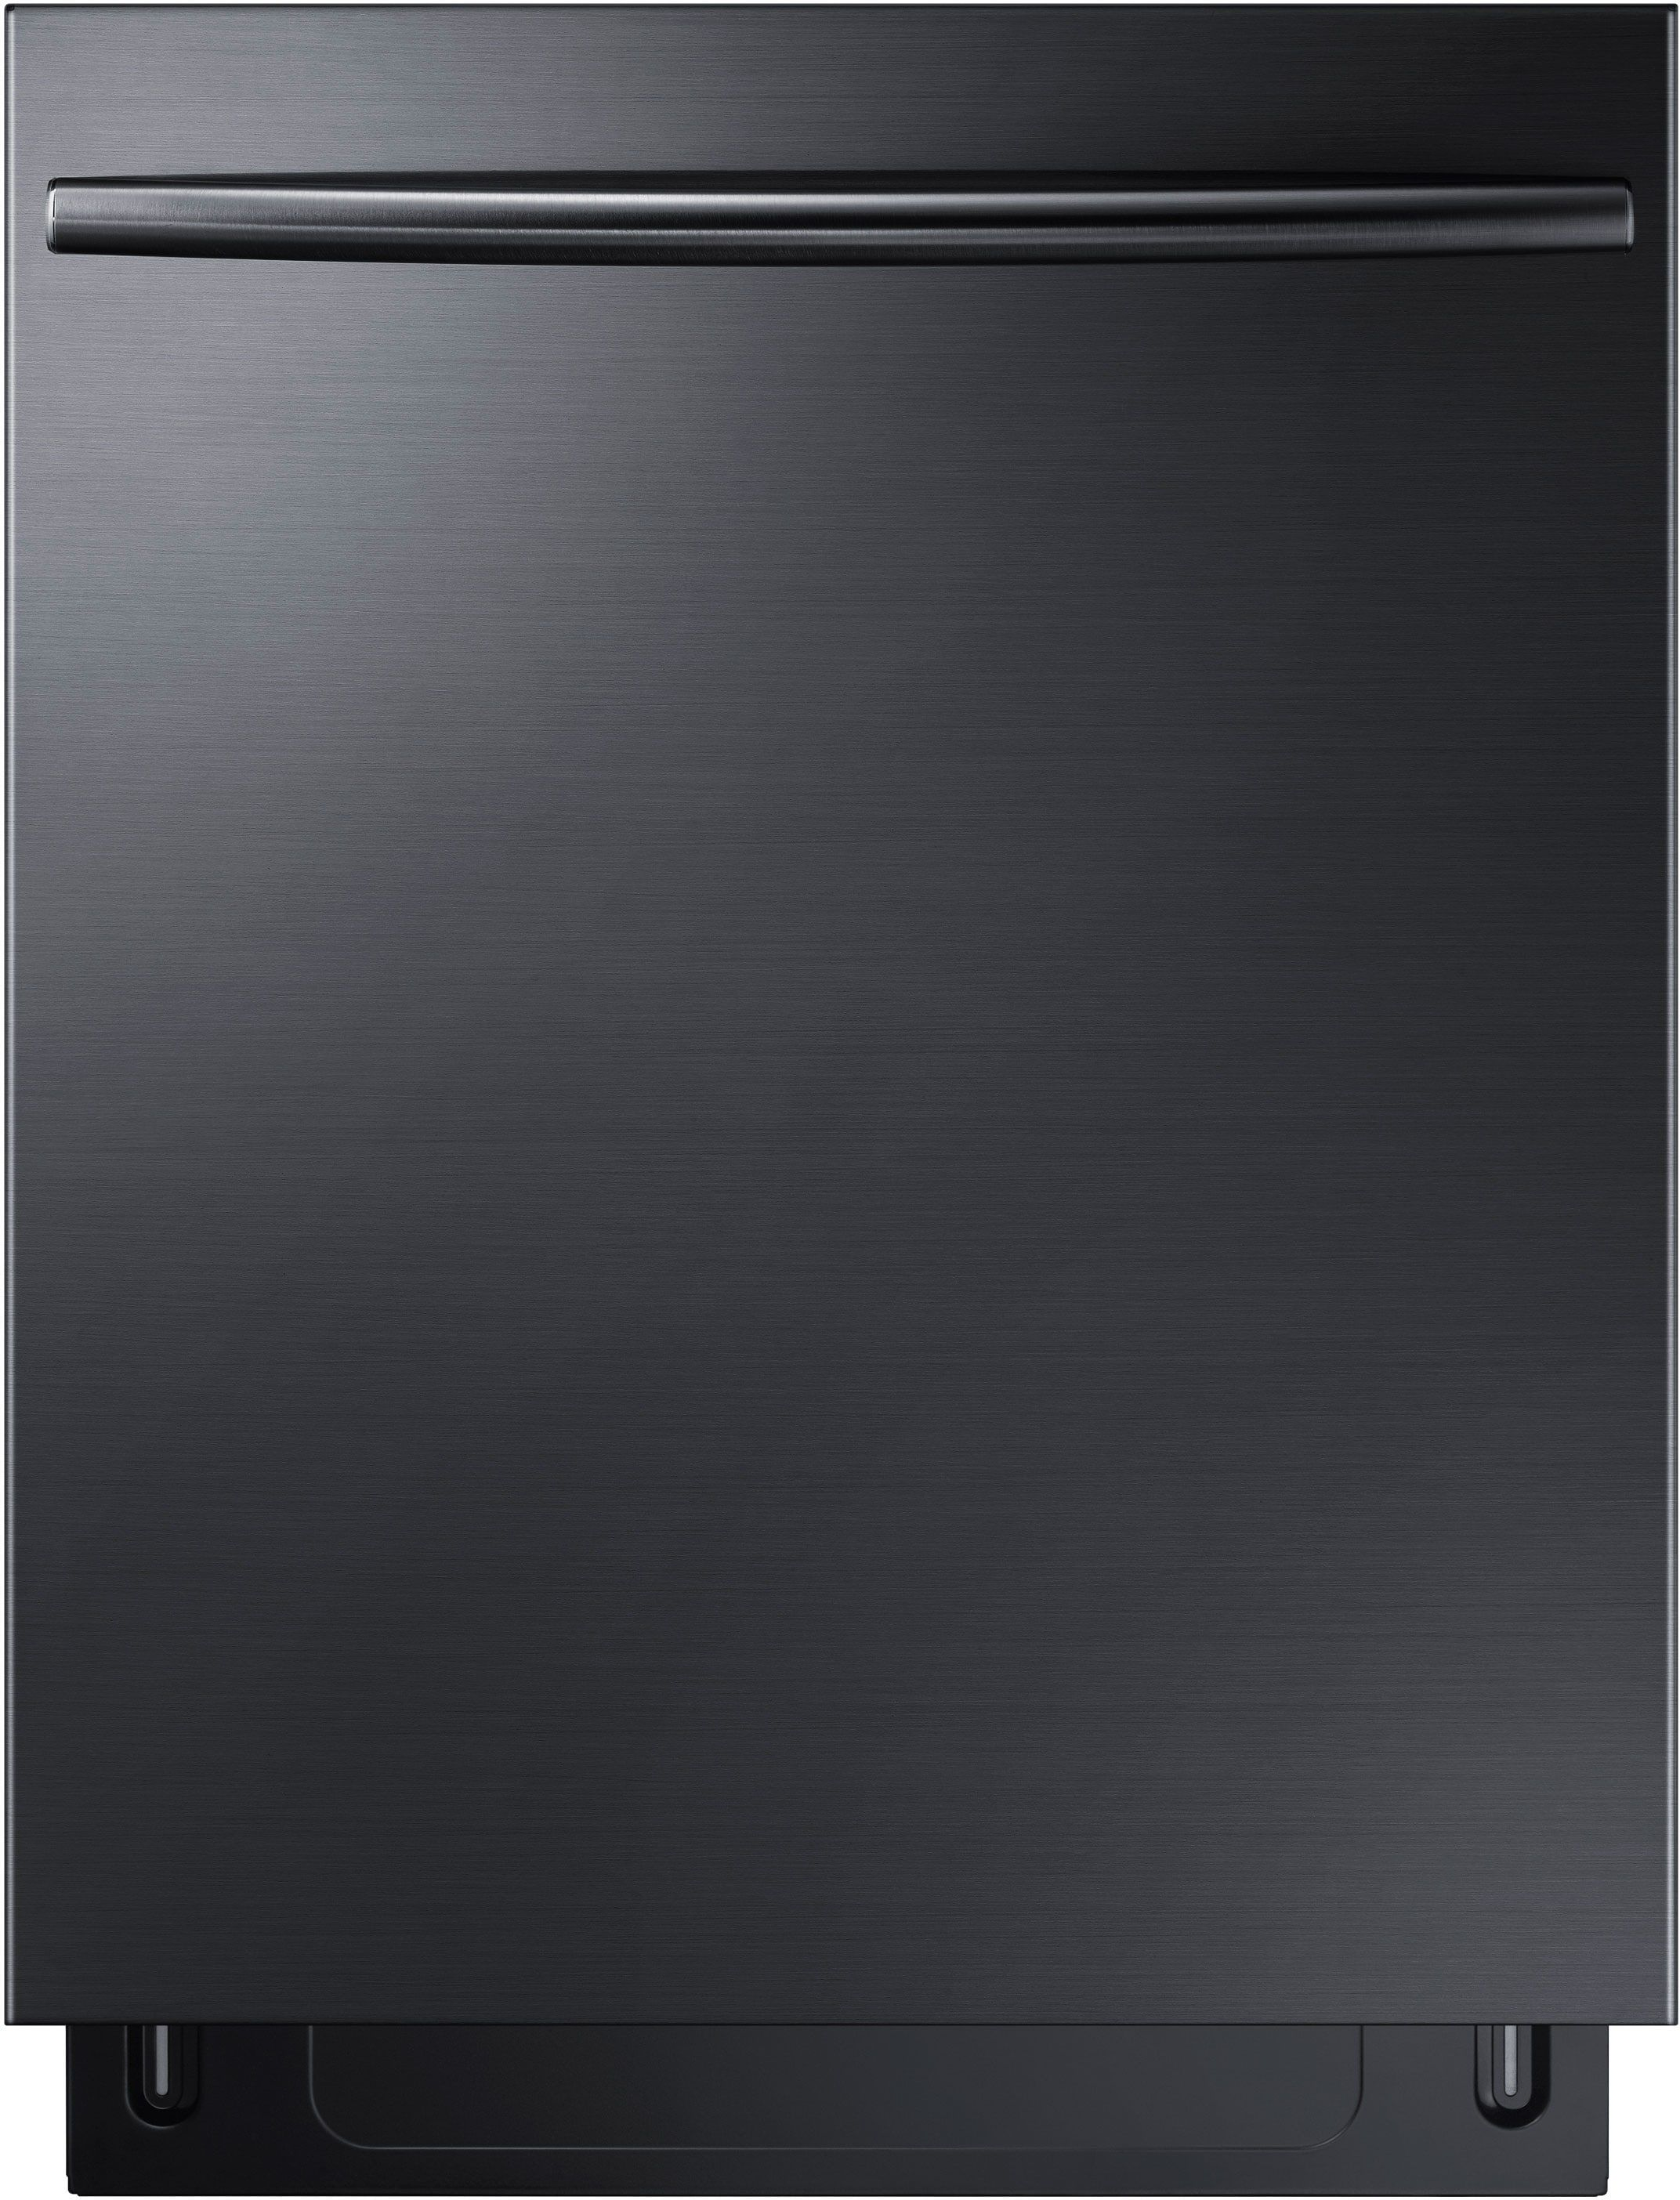 Samsung Dw80k7050ug 24 Inch Fully Integrated Dishwasher With 15 Place Setting Capacity 6 Wash Cycles Stormwash System Flexload Racking System Autorelease